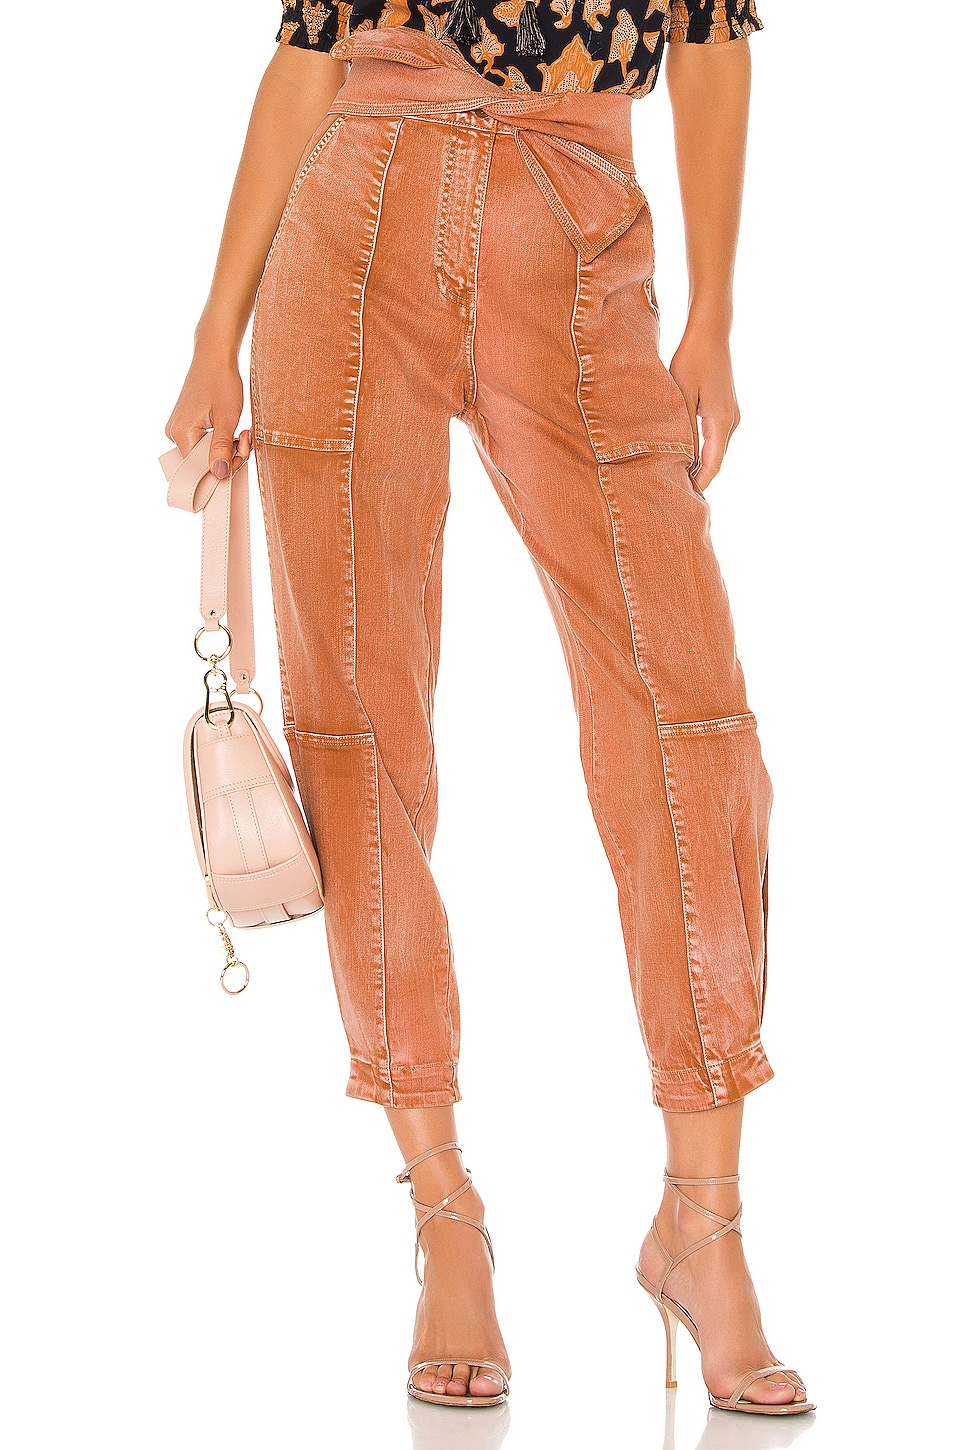 Ulla Johnson Storm Jean in Rust Acid Wash